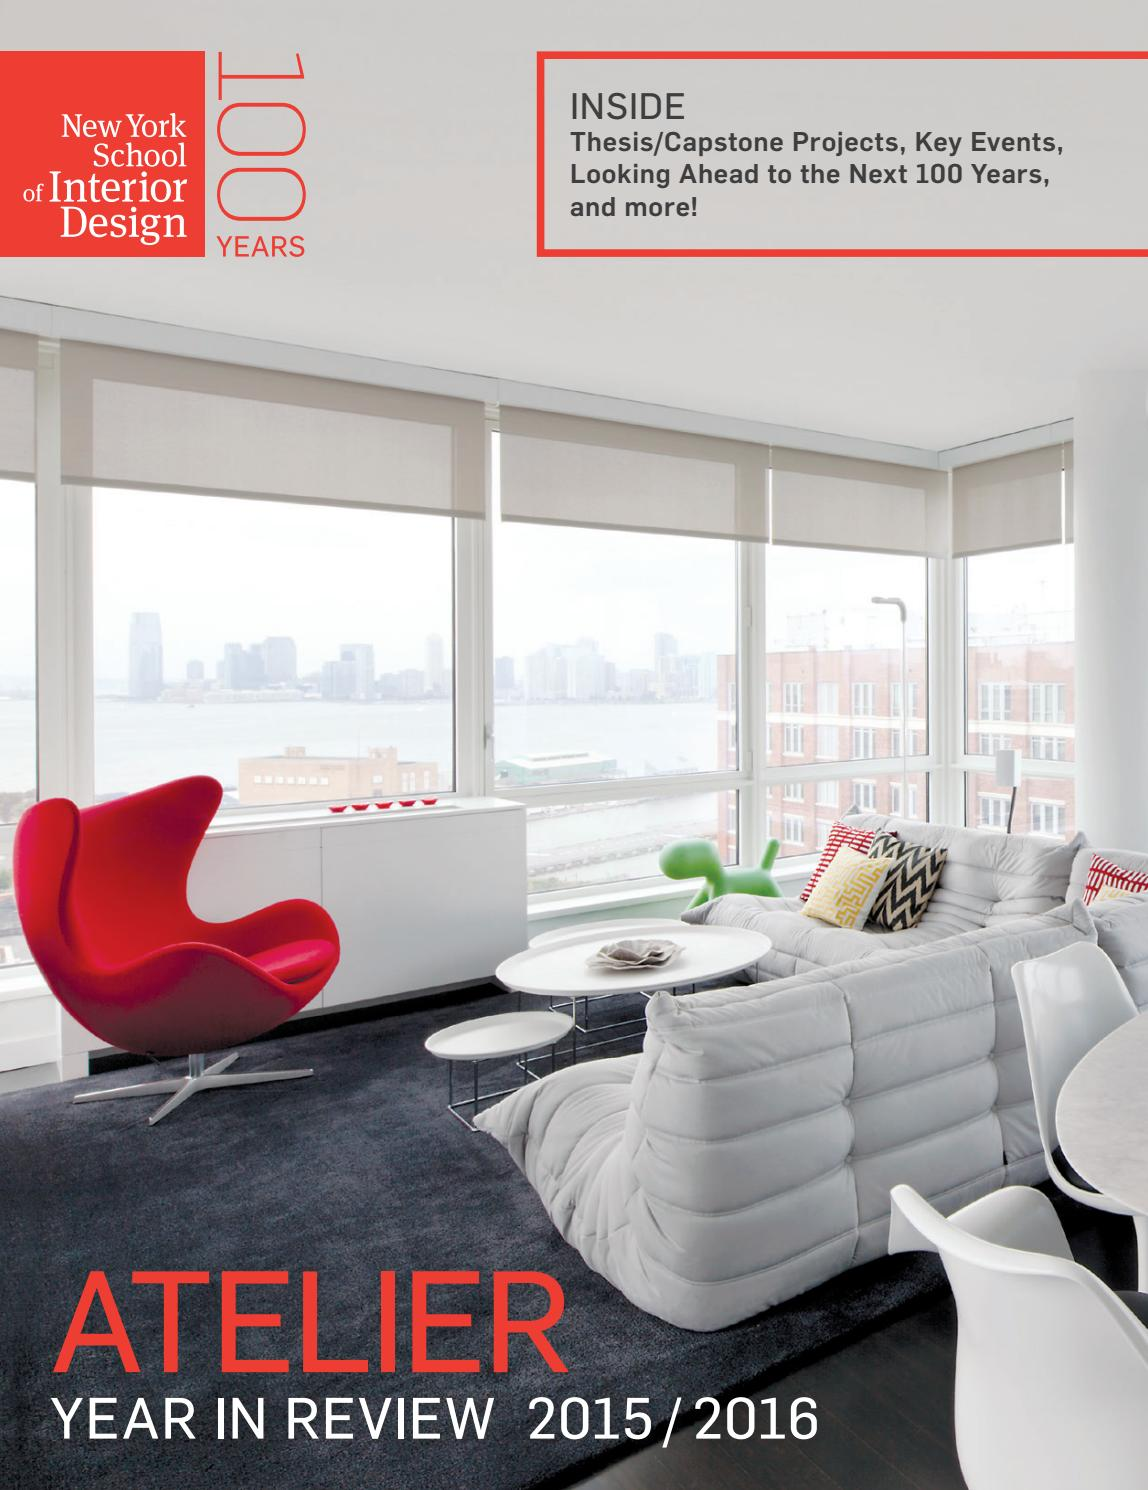 Atelier: year in review 2014/2015 by new york school of interior ...